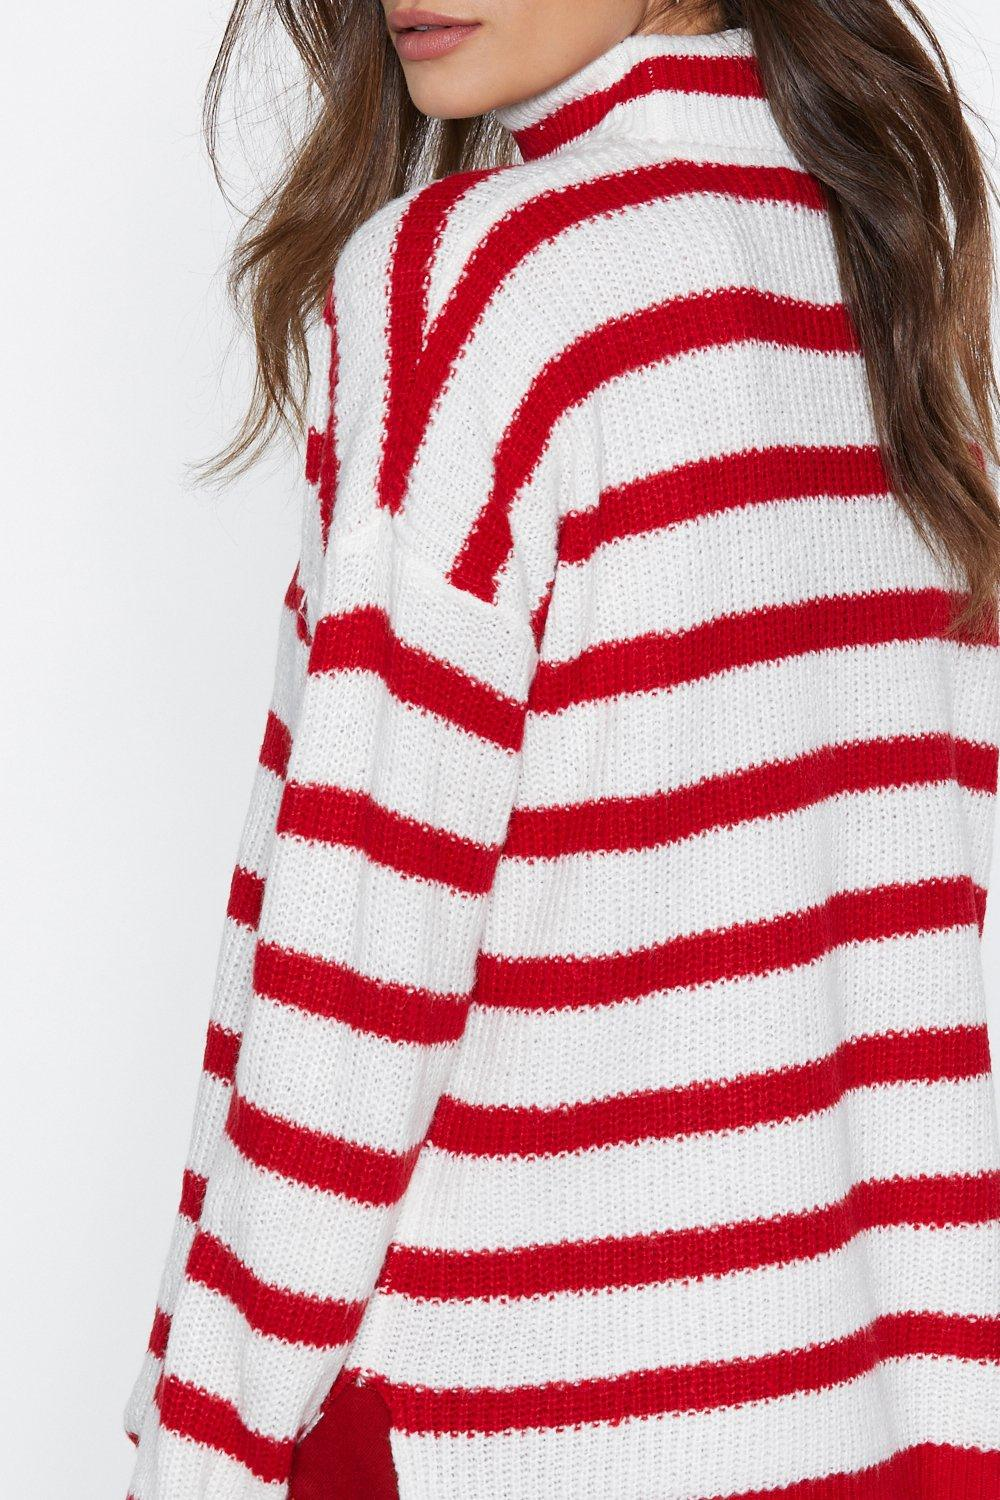 833da2990f5 Straight From the Heart Turtleneck Sweater